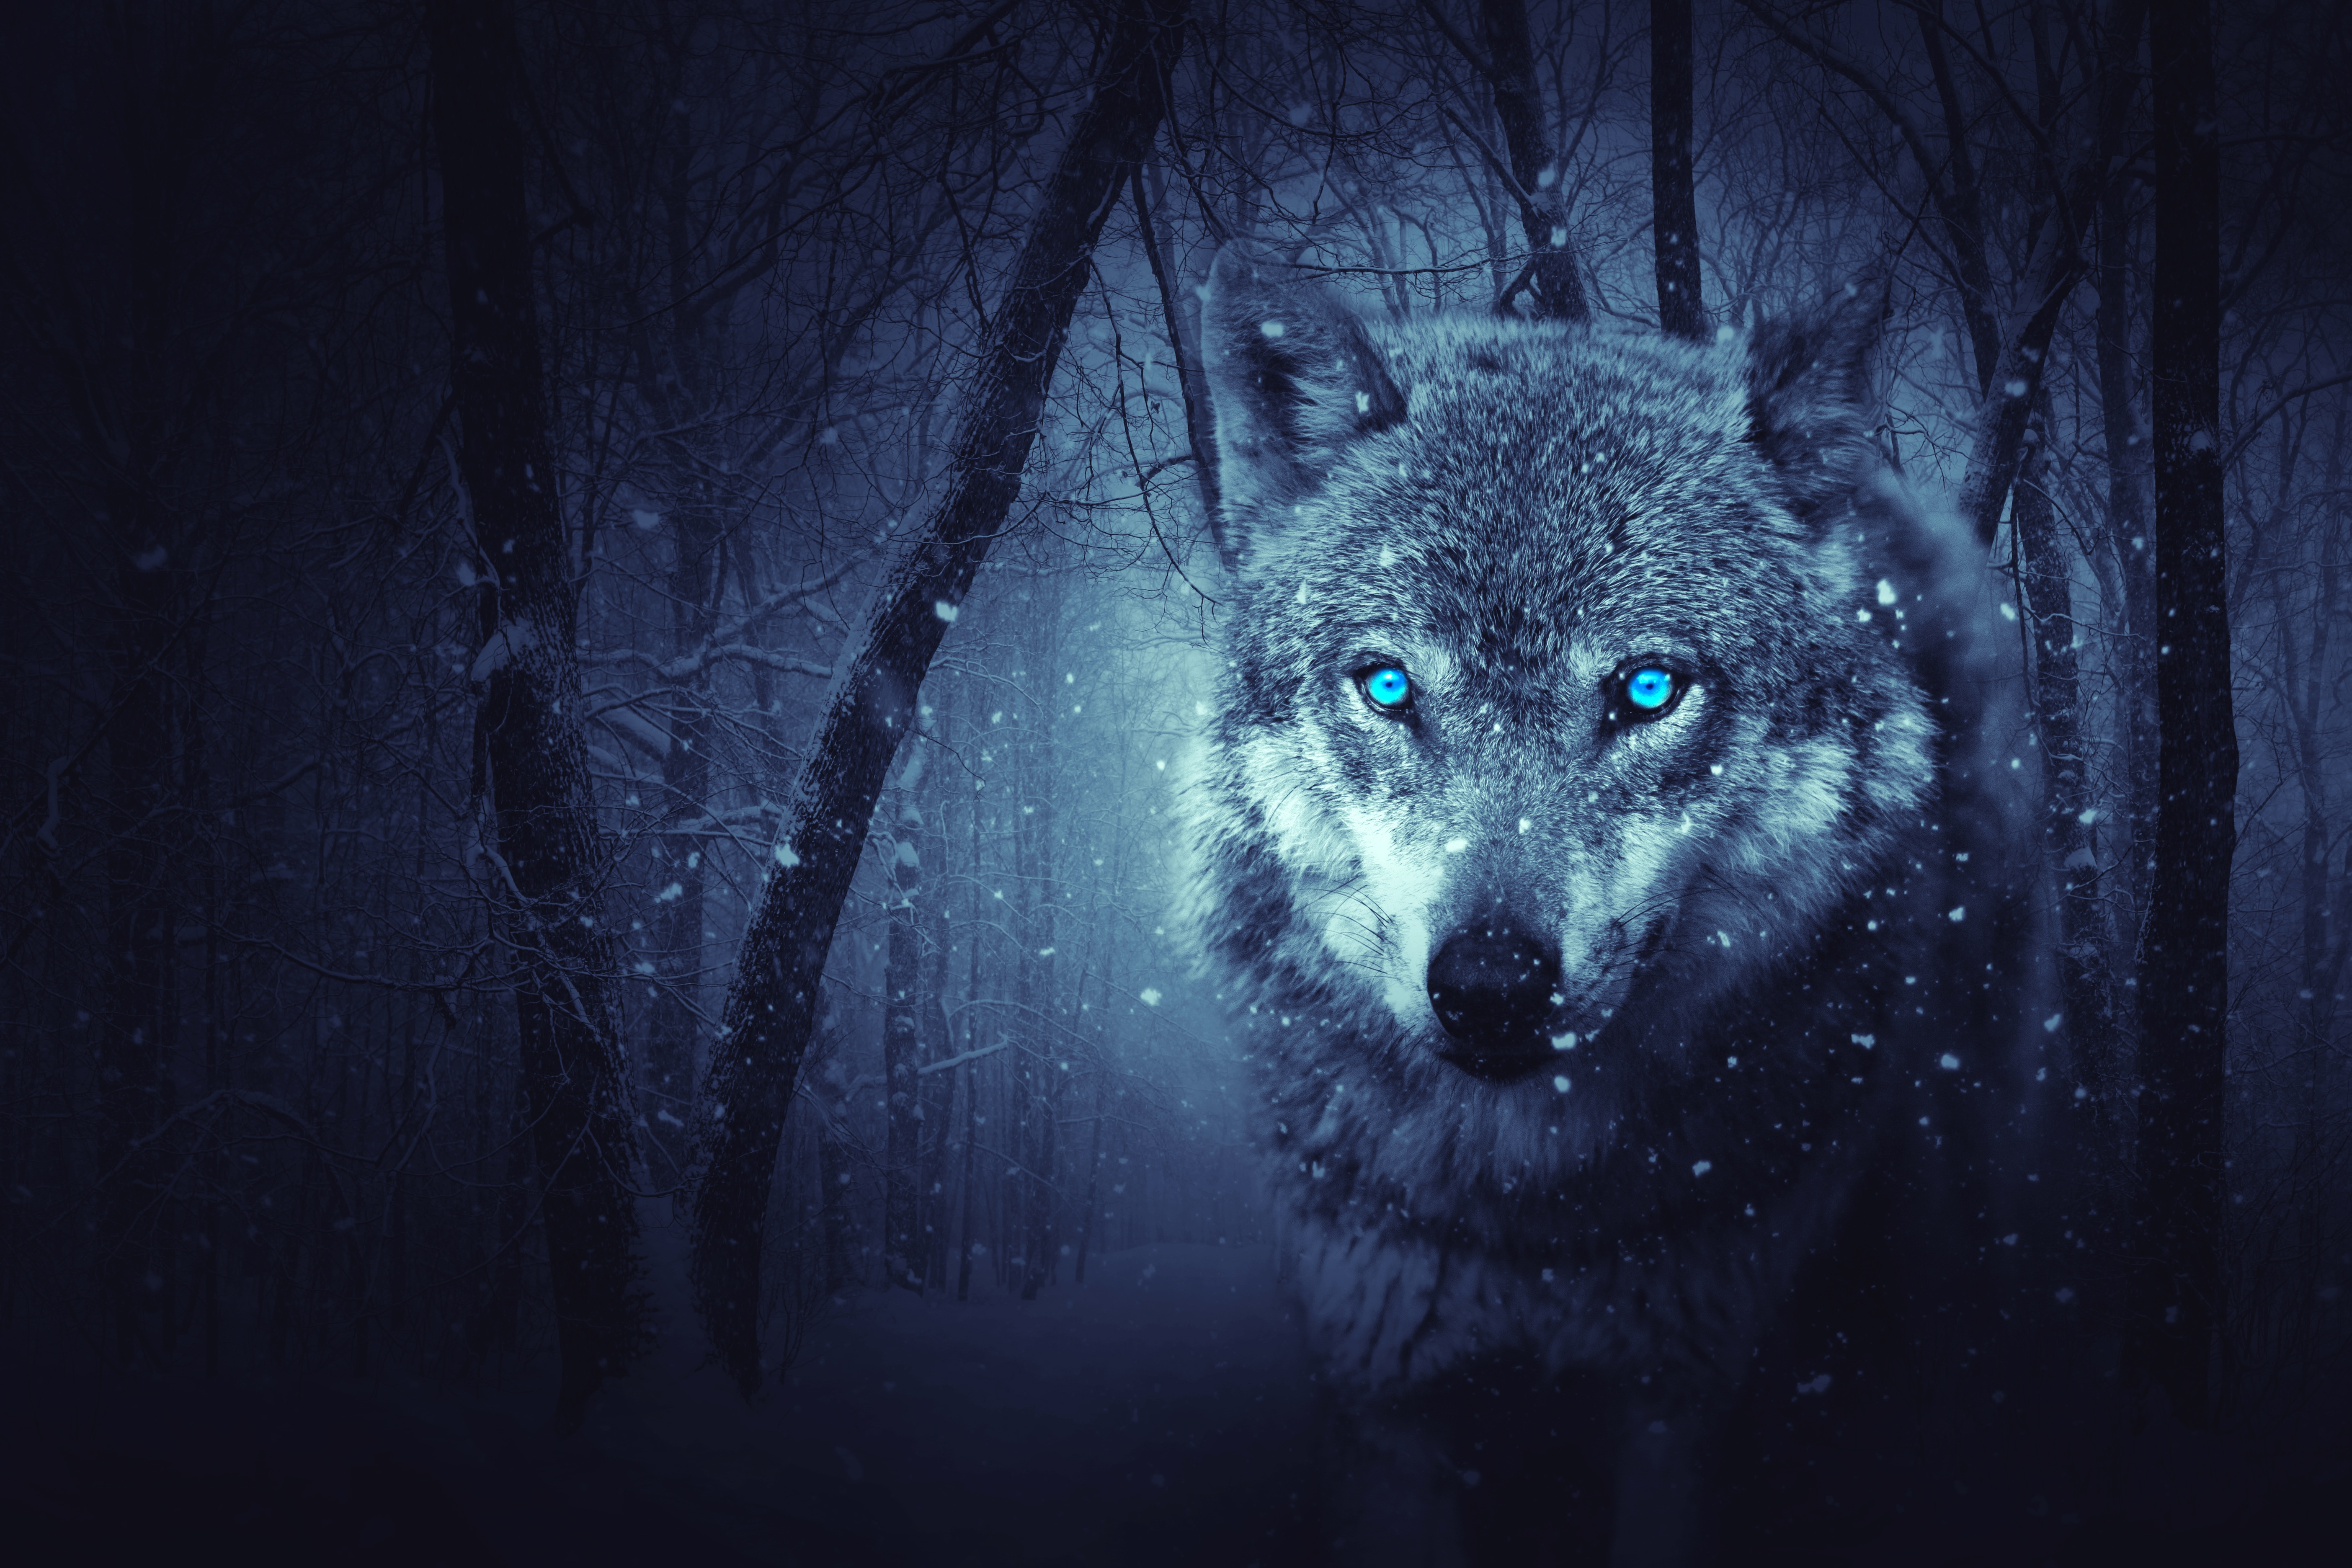 Fantasy Wolf in a Dark Winter Forest 5k Retina Ultra HD ...